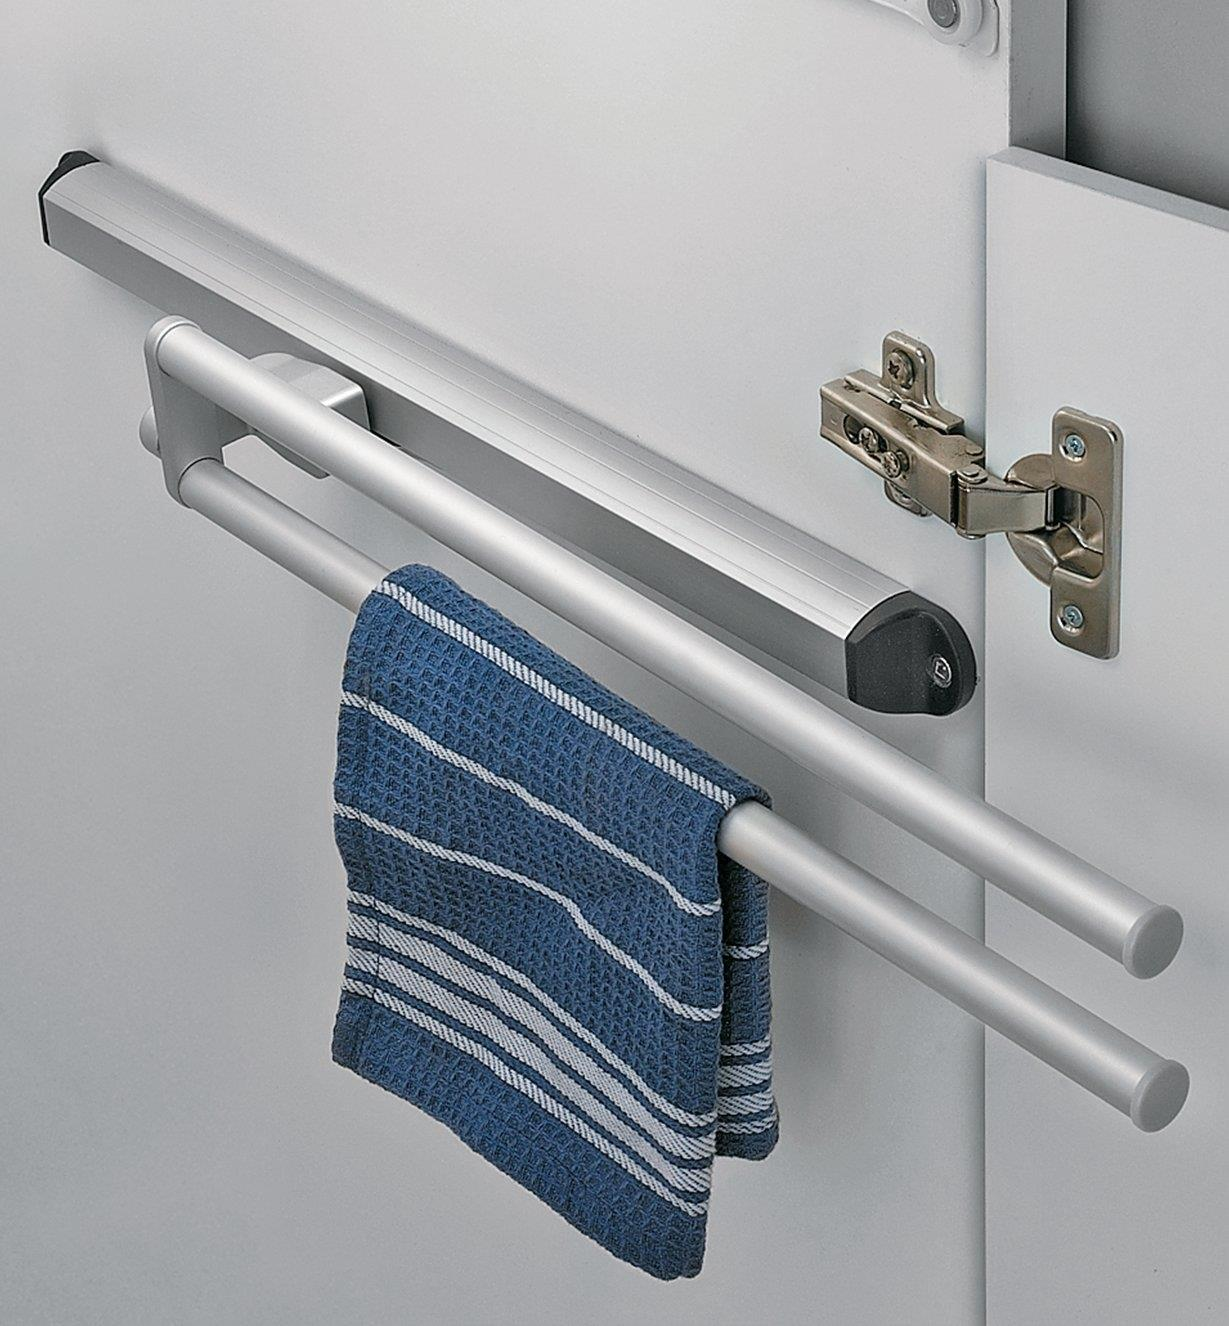 12K0990 - Sliding Towel Rack